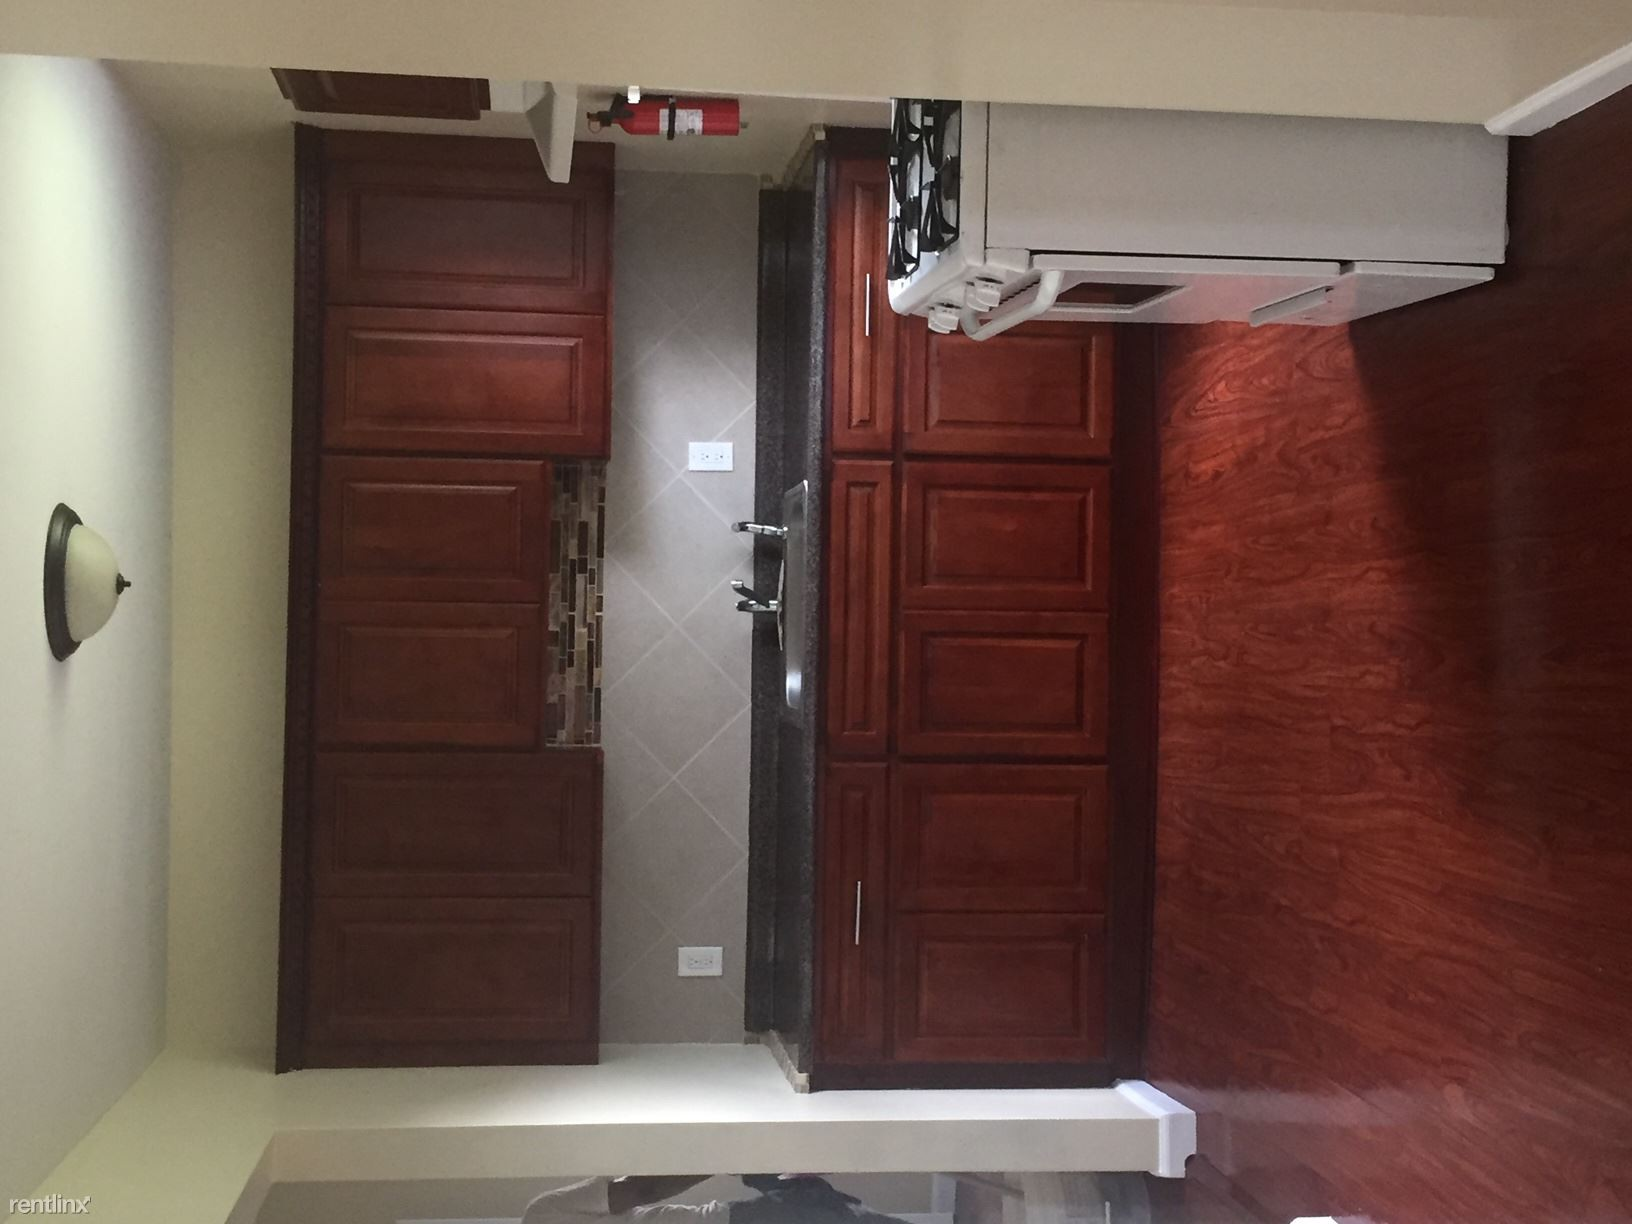 611 Clinton Ave Apartments for Rent in Upper Clinton Hill Newark